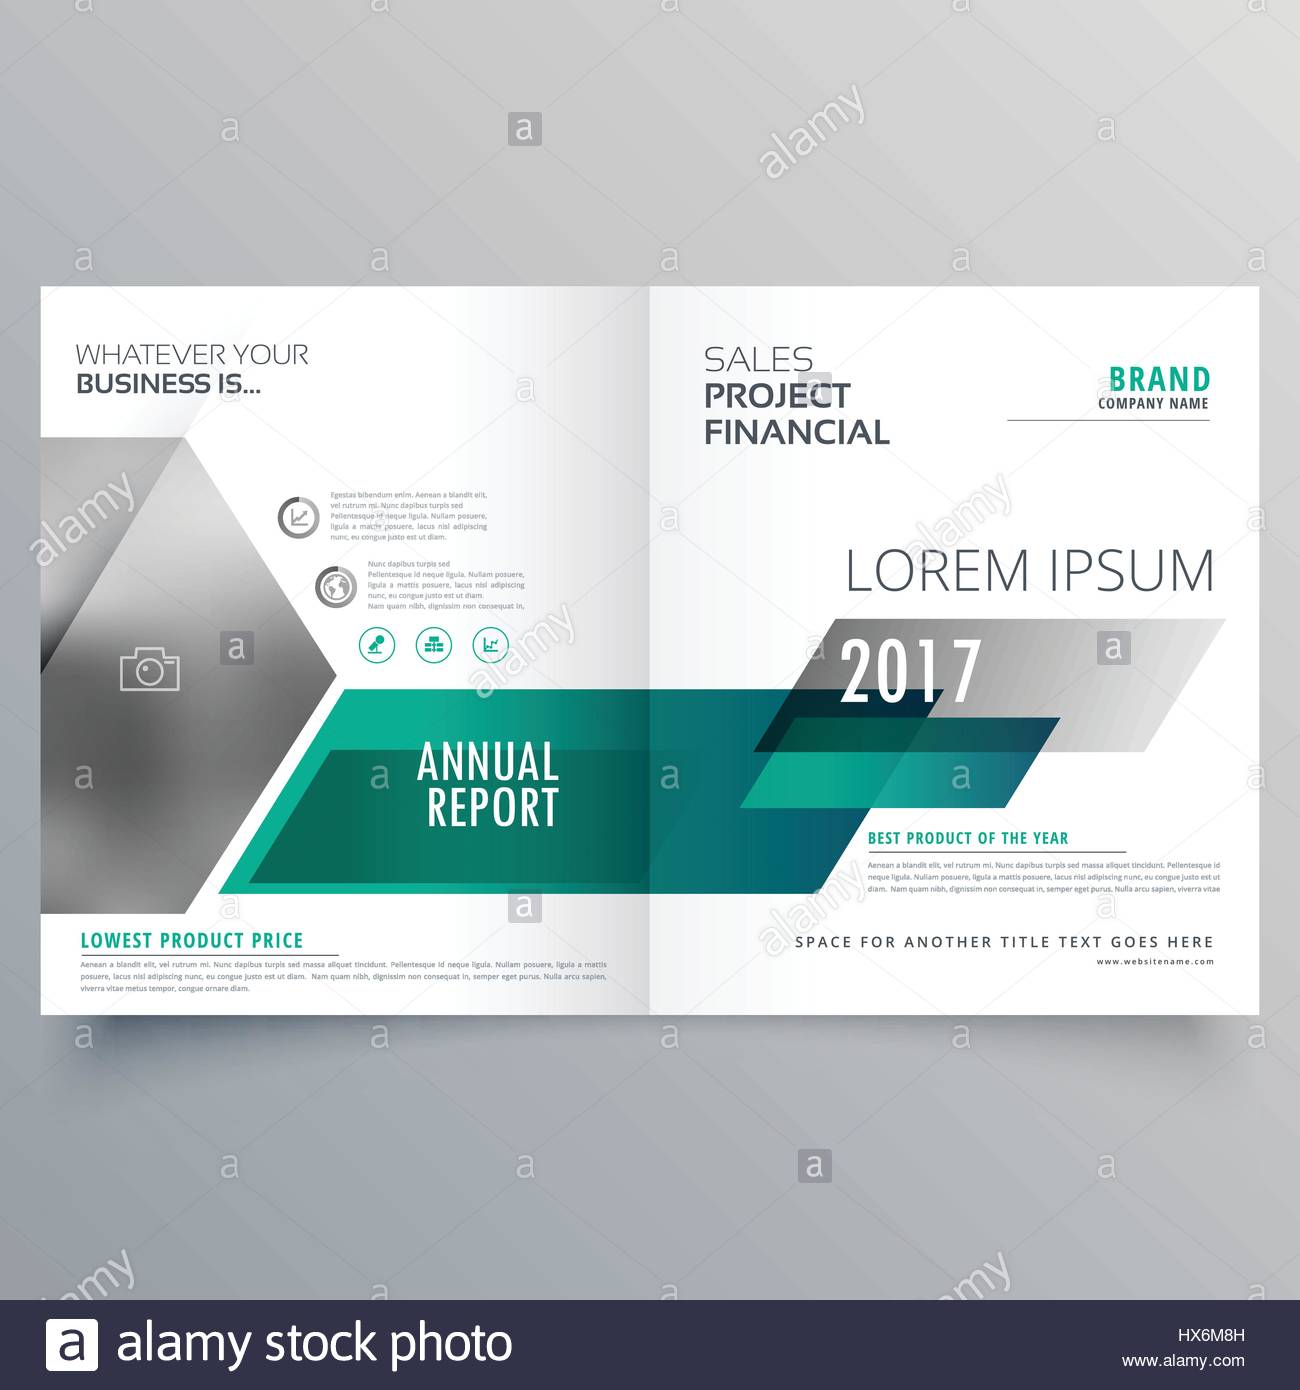 Modern Bifold Brochure Template Design For Your Brand Stock Vector - Modern brochure template